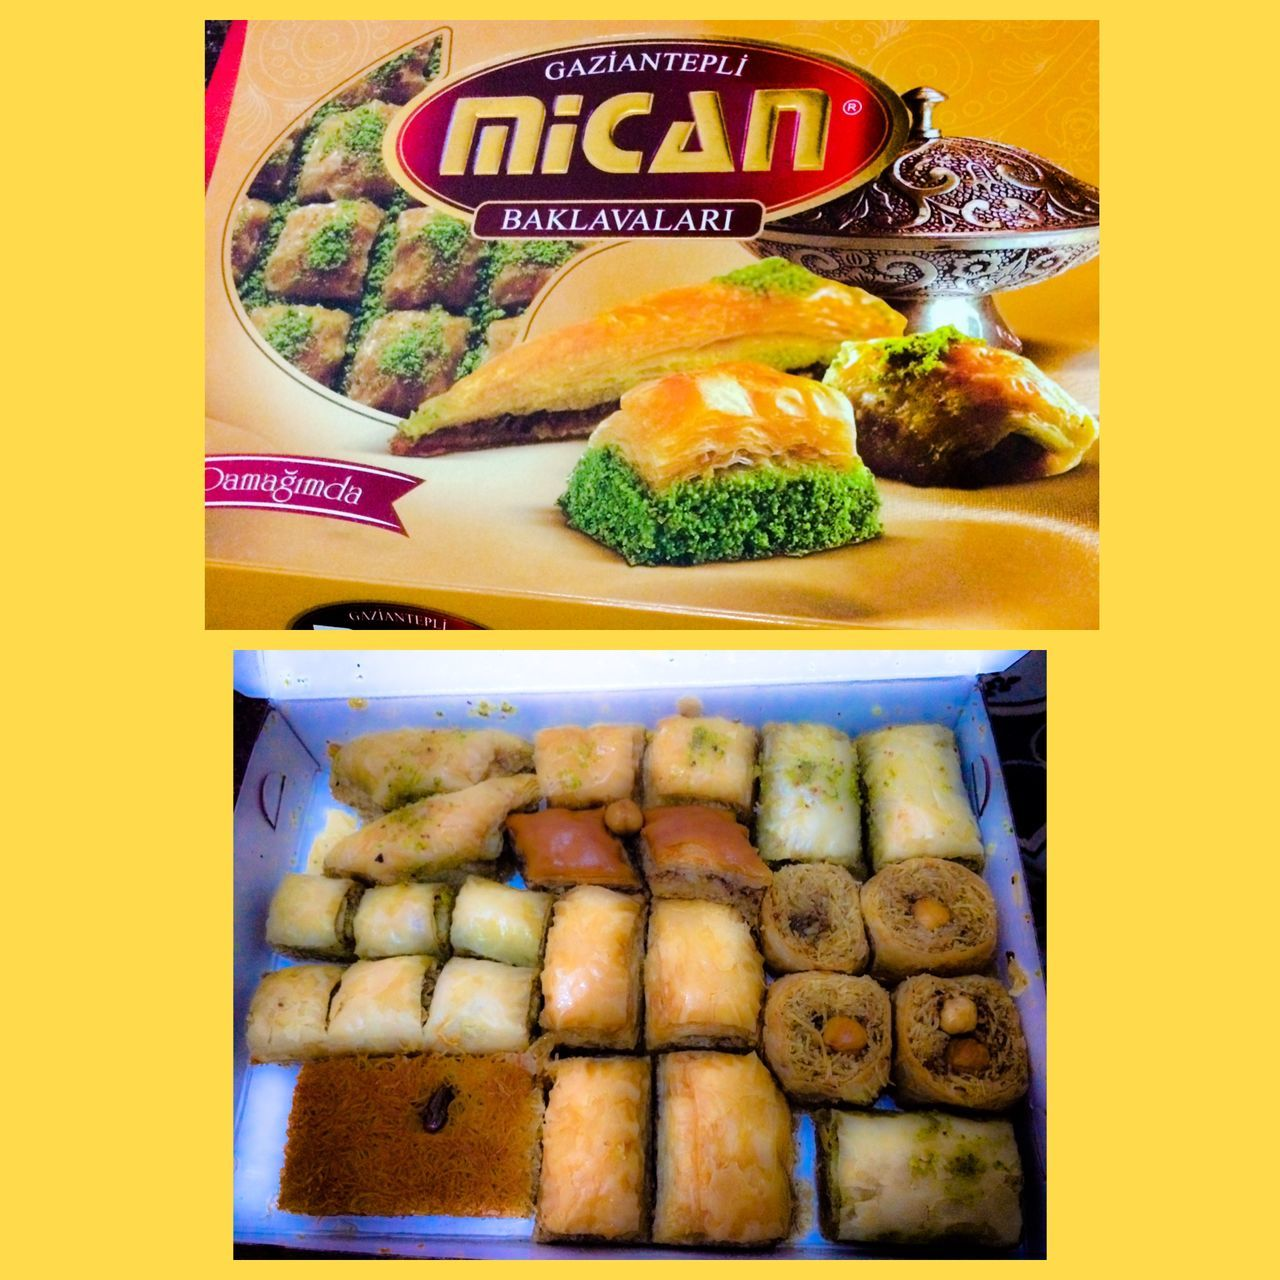 Eating Baklava Baklawa Eating Baklava Turkish Baklava Turkey Türkiye Mican Tadi Turkish 😝#yummy😜🇹🇳🇹🇳🇹🇳